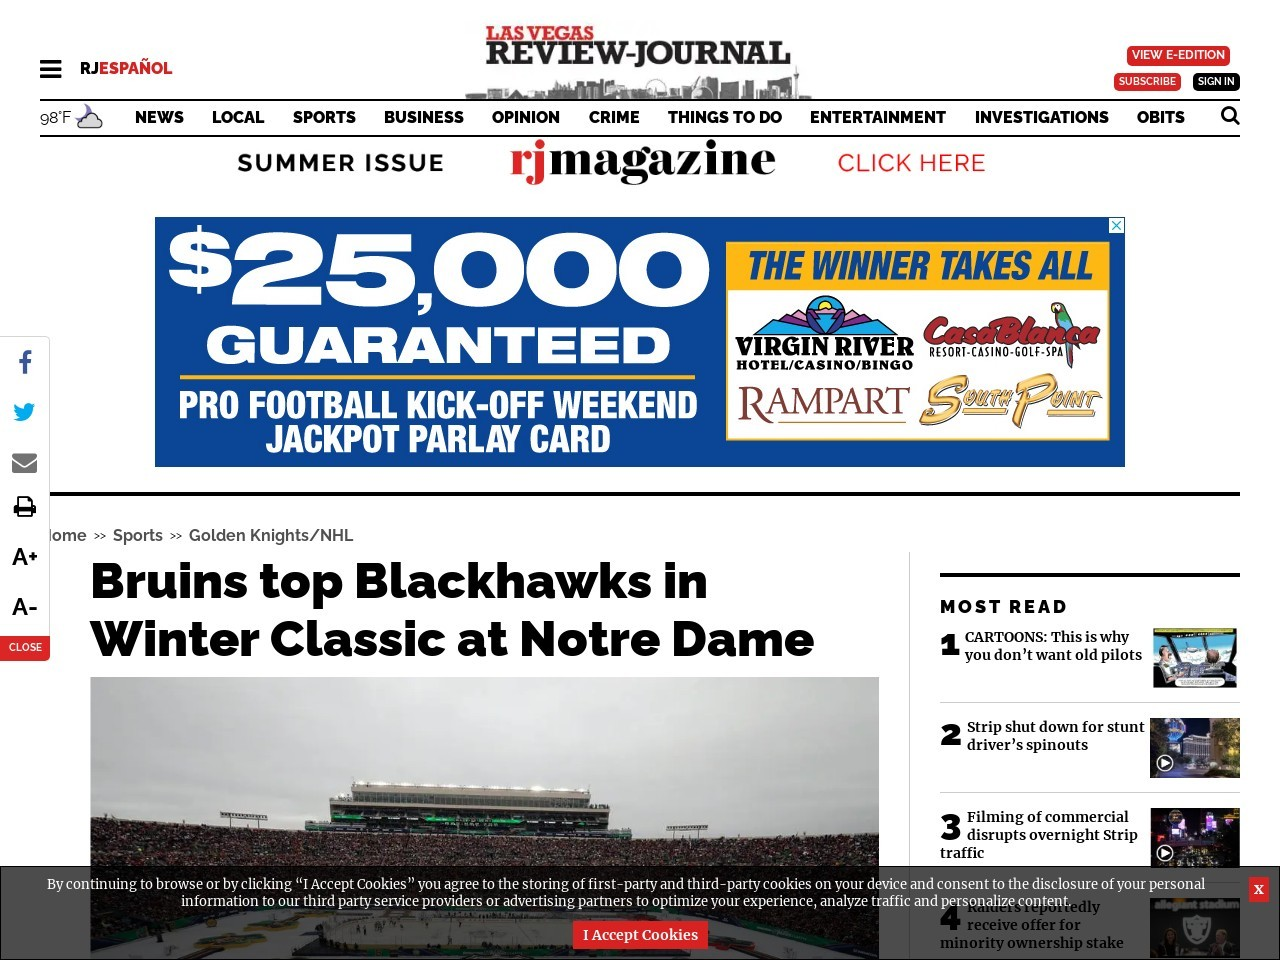 Bruins top Blackhawks in Winter Classic at Notre Dame